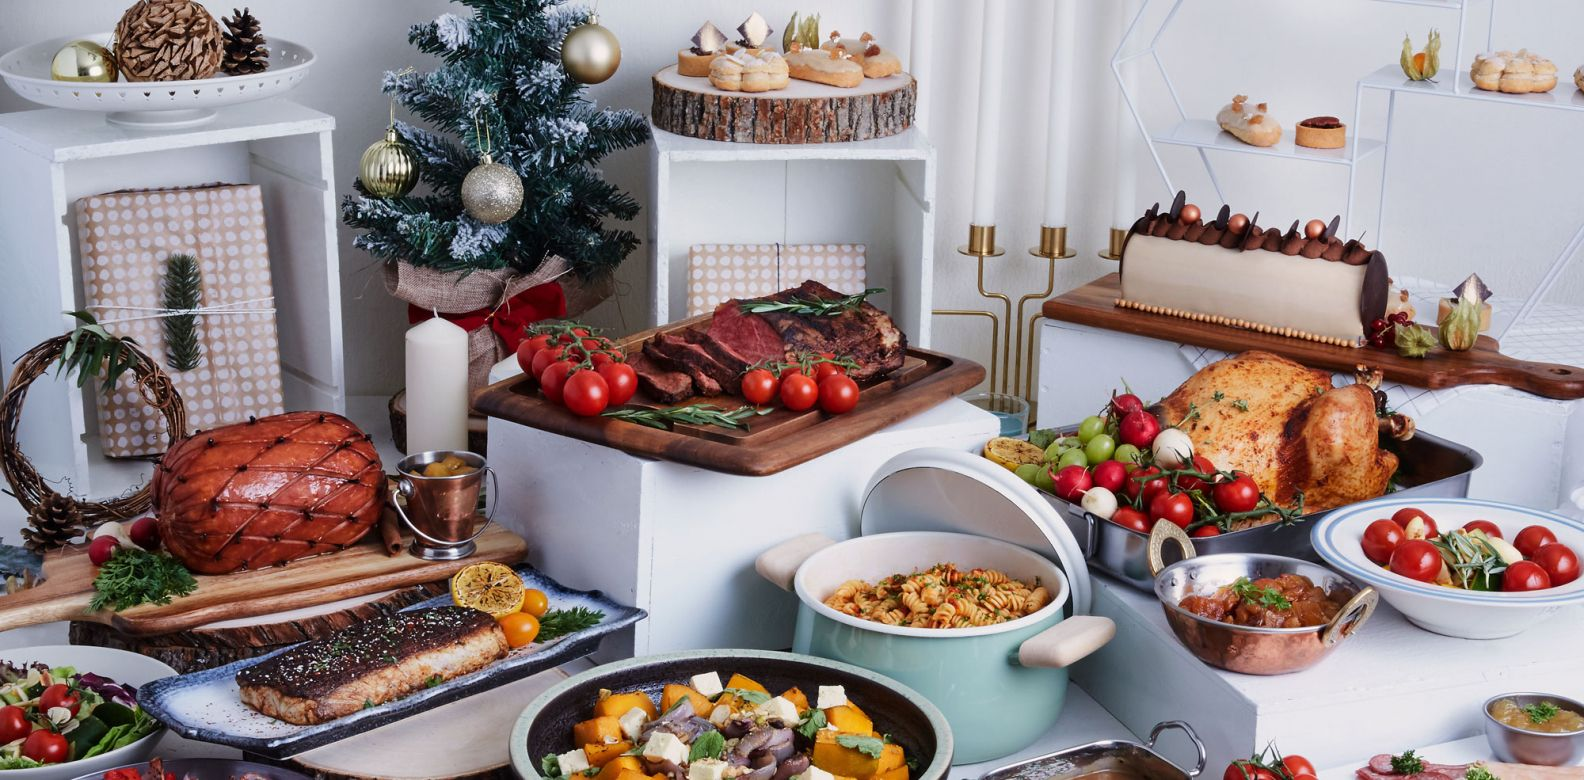 All the sumptuous dishes you can sink your teeth into, thanks to Megu Catering Concepts